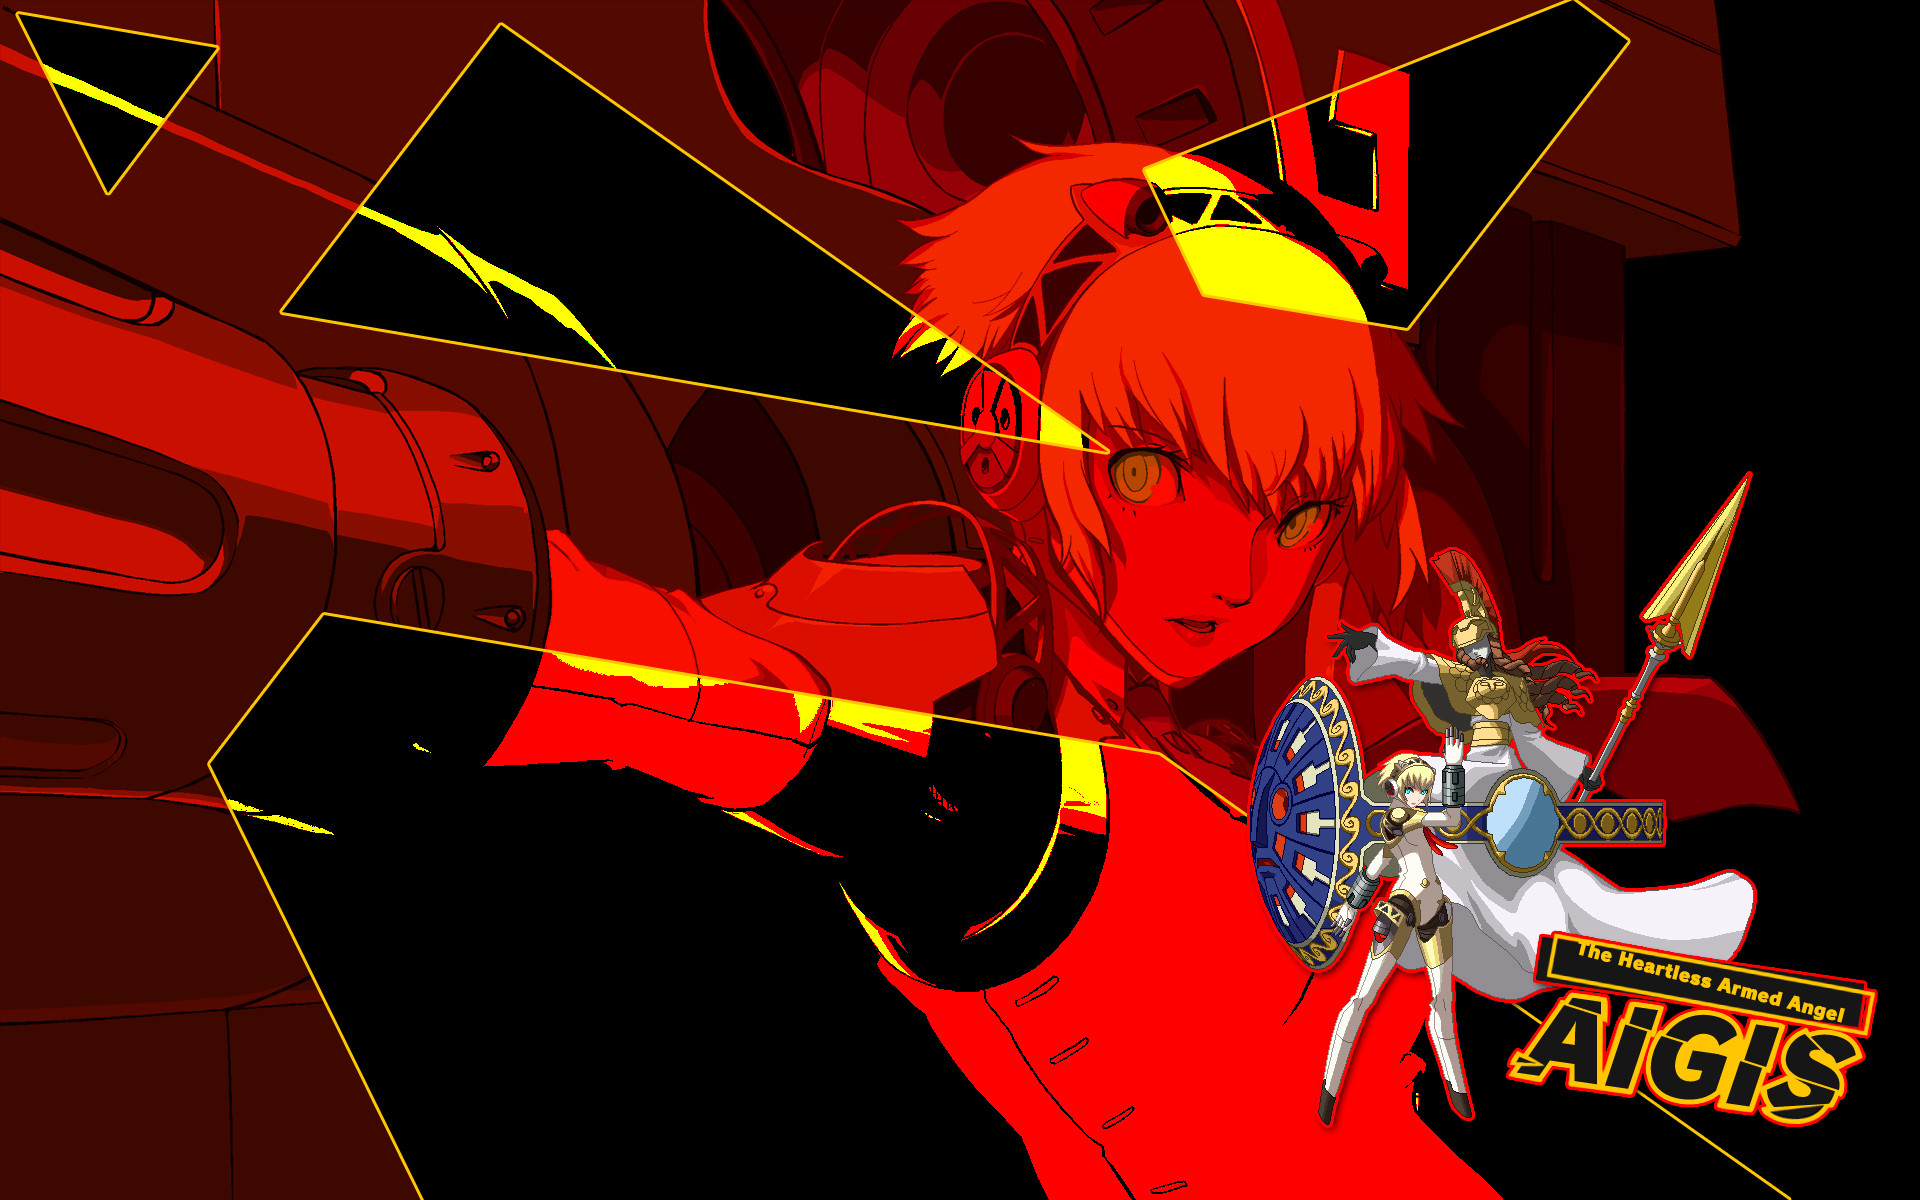 Aigis: Her fingers are GUNS, her eyes are SIGHTS!